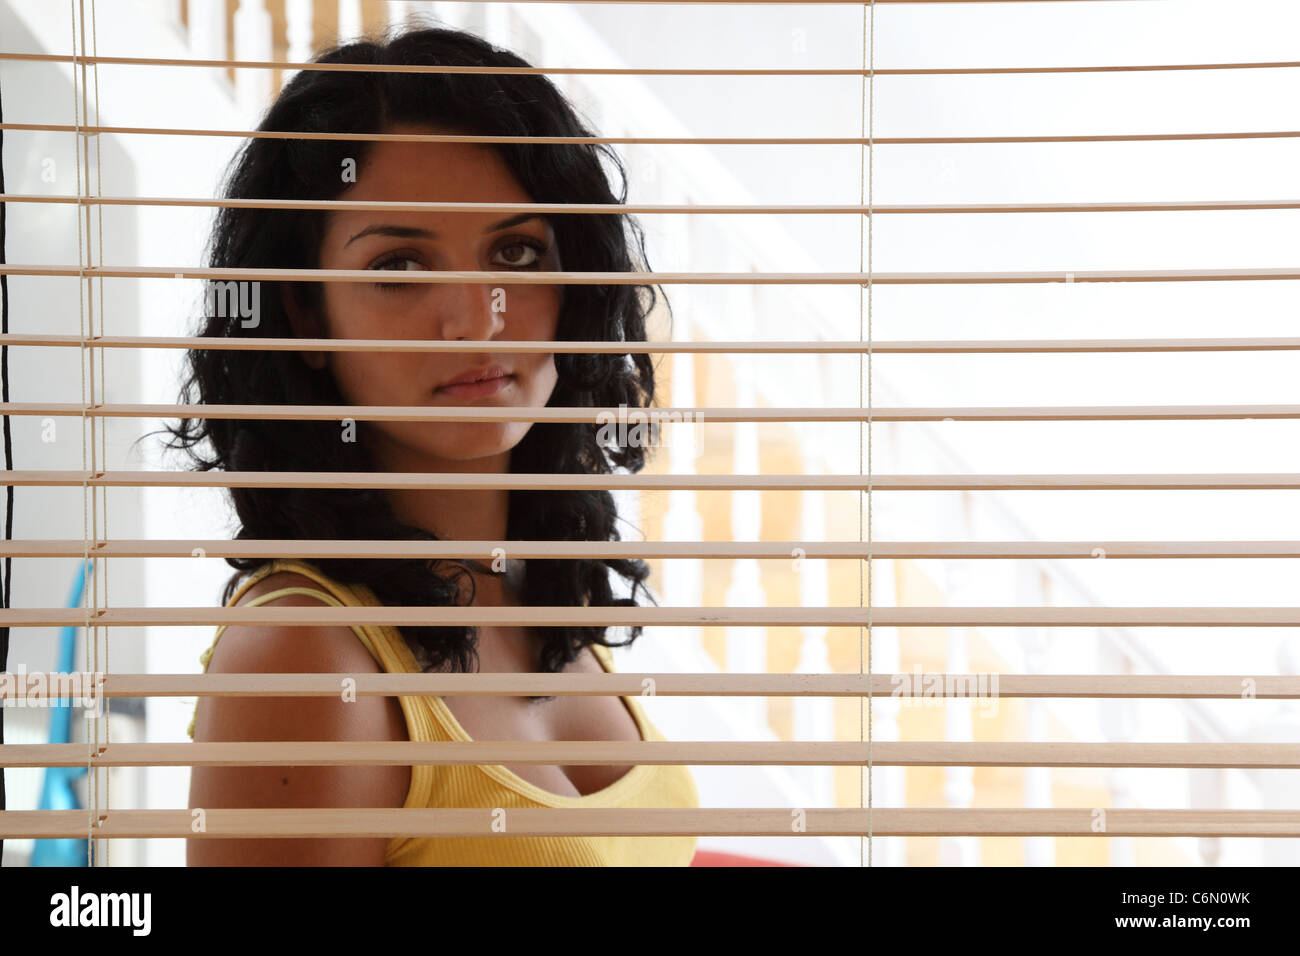 Woman behind a wooden blind looking out. Stock Photo